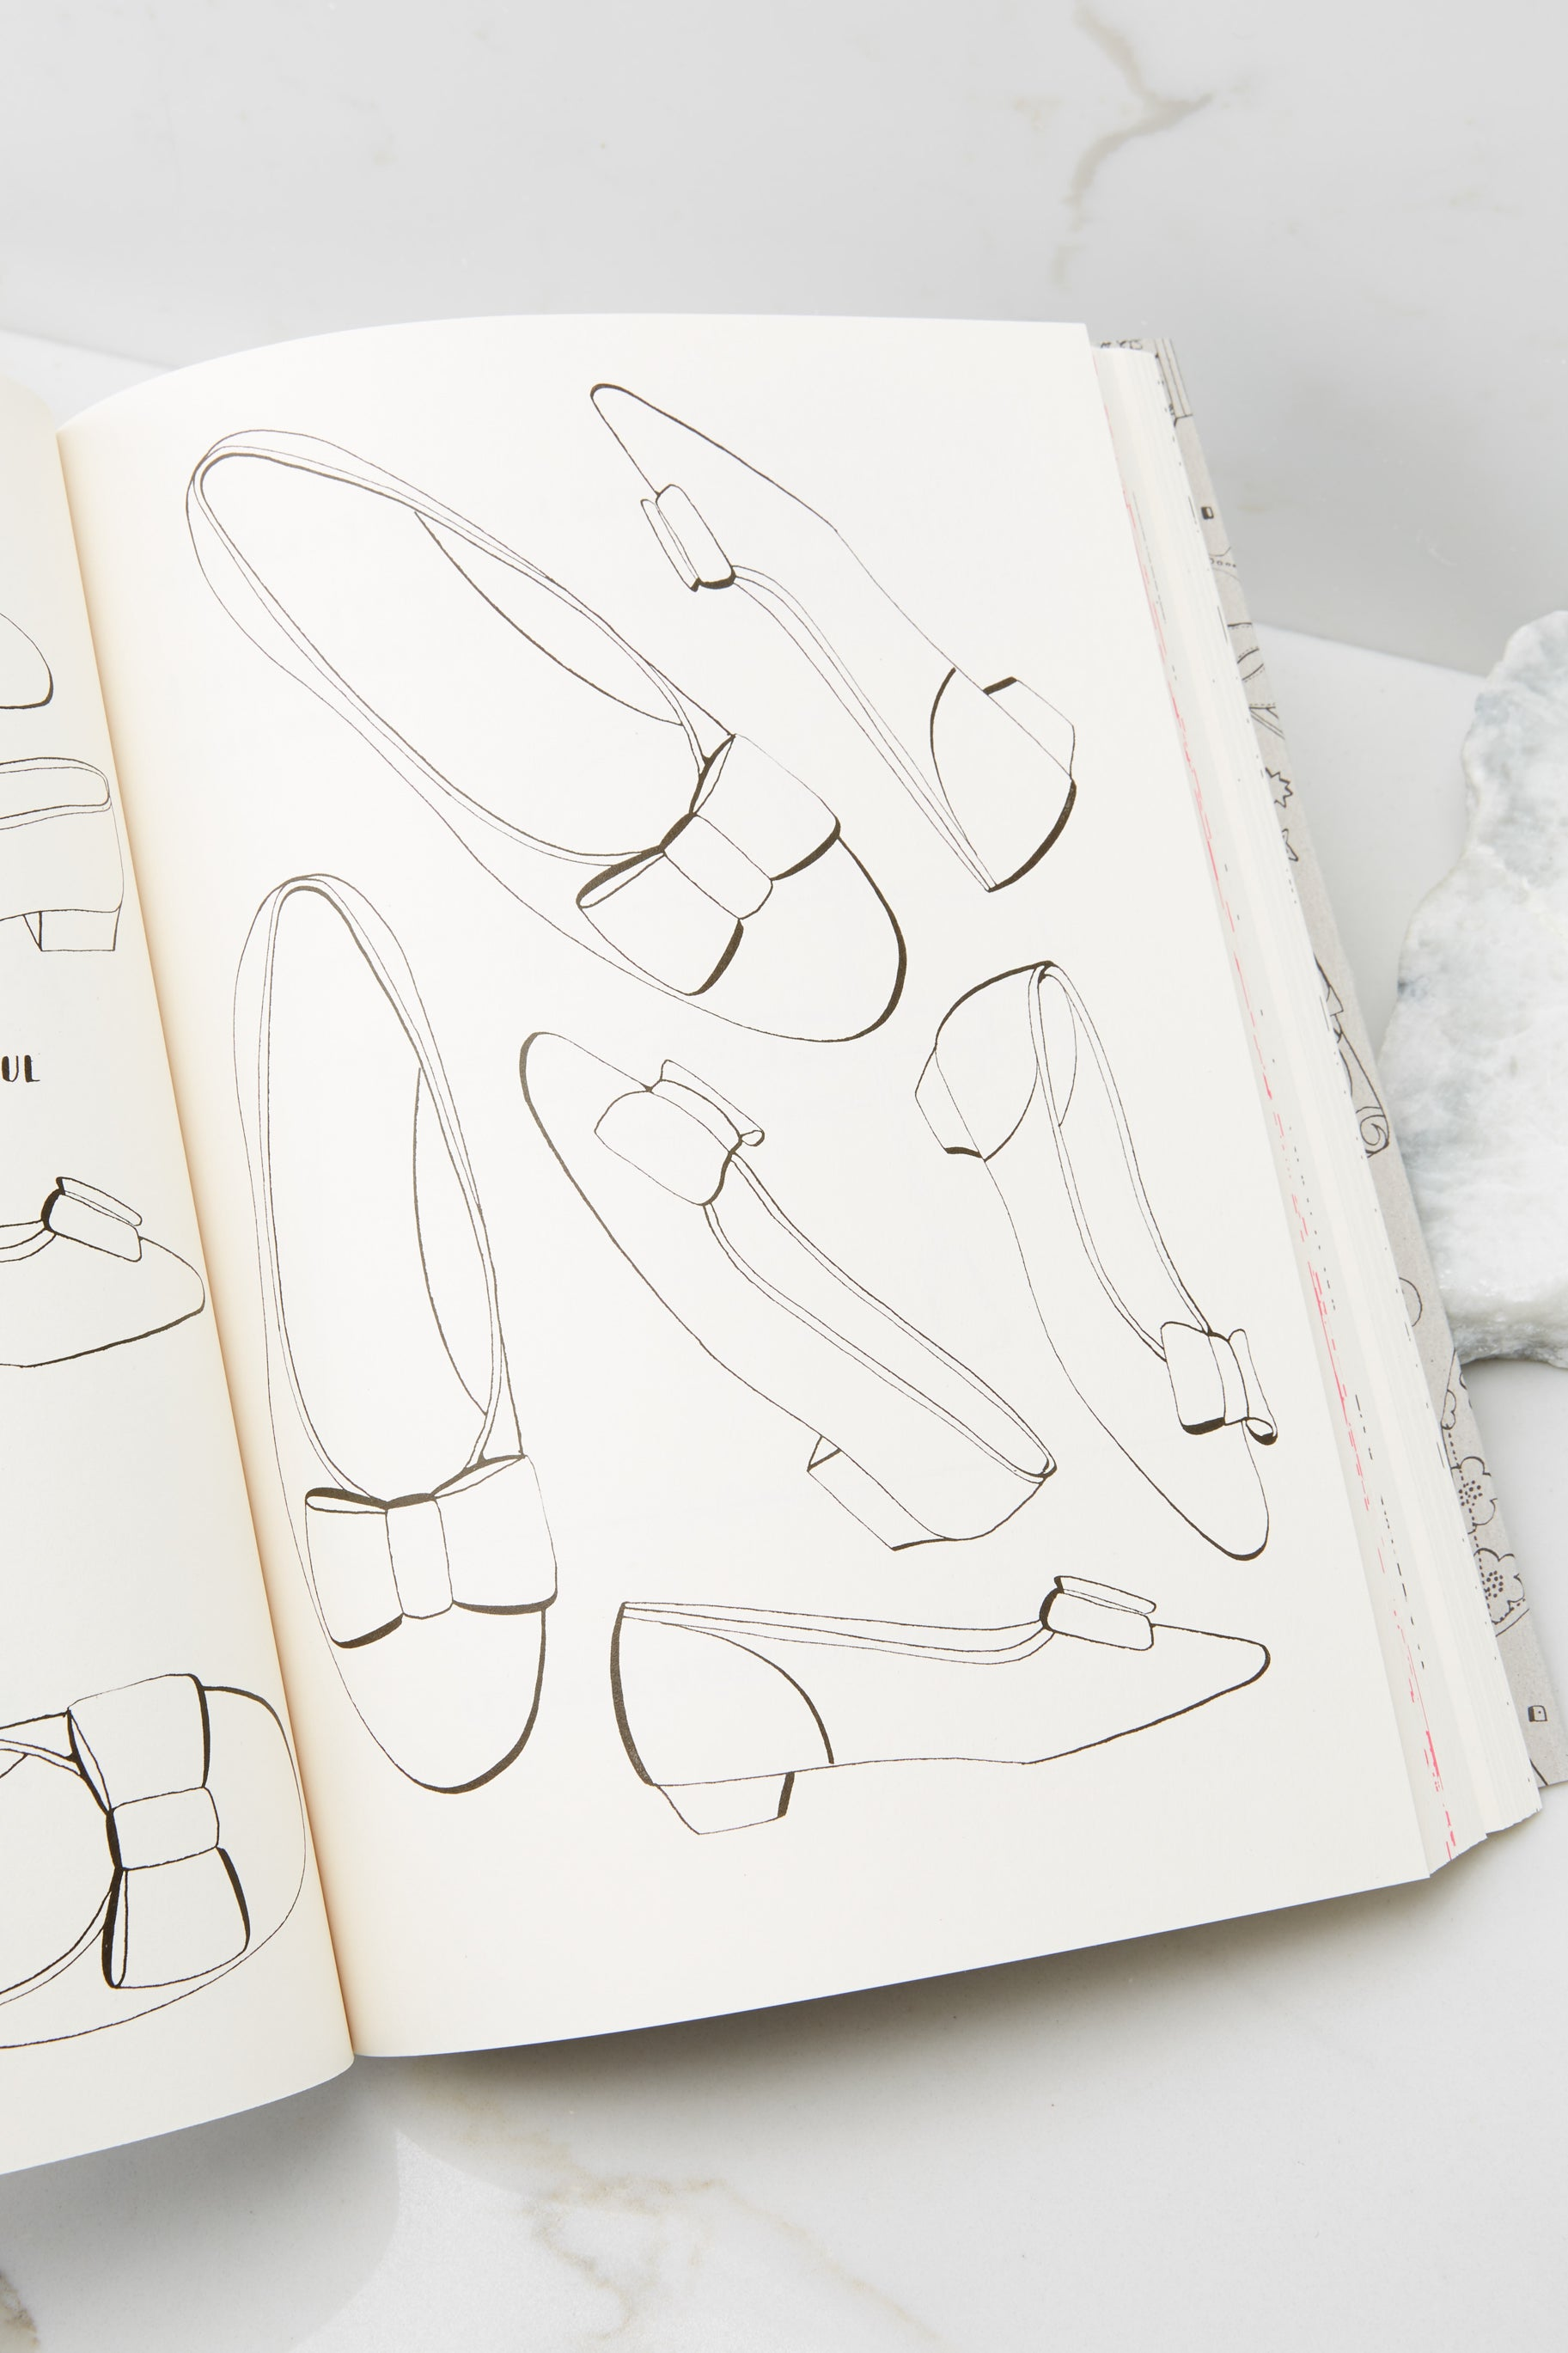 4 My Even More Wonderful World Of Fashion Activity Book at reddress.com